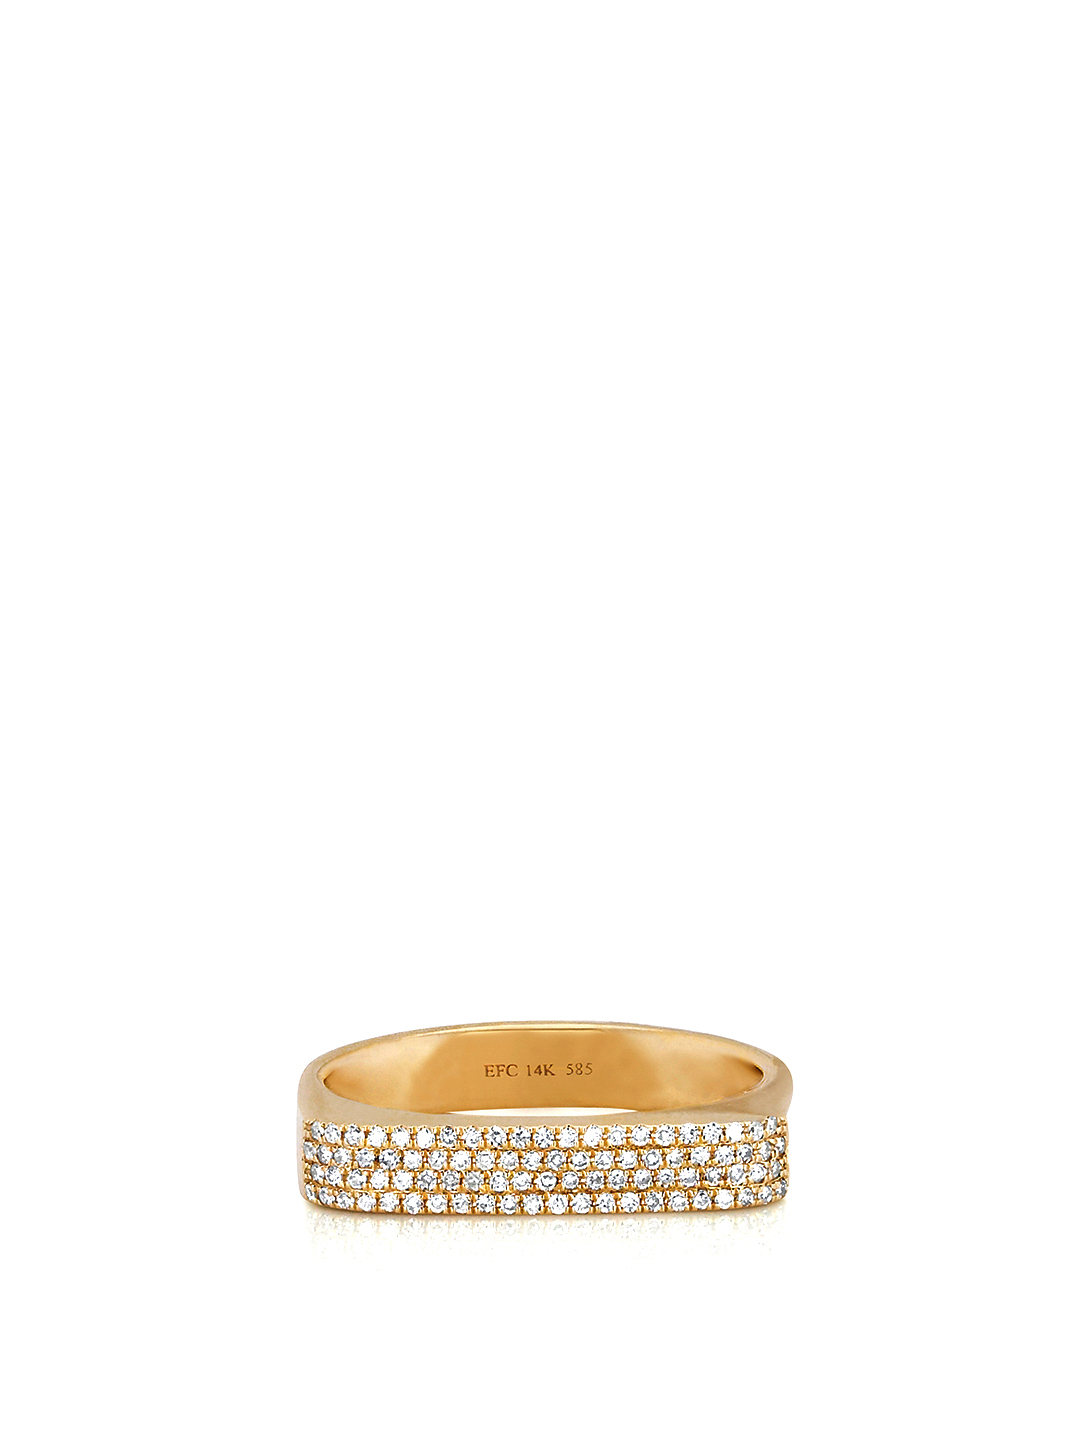 EF COLLECTION 14K Gold Jumbo Bar Ring With Diamonds Women's Metallic